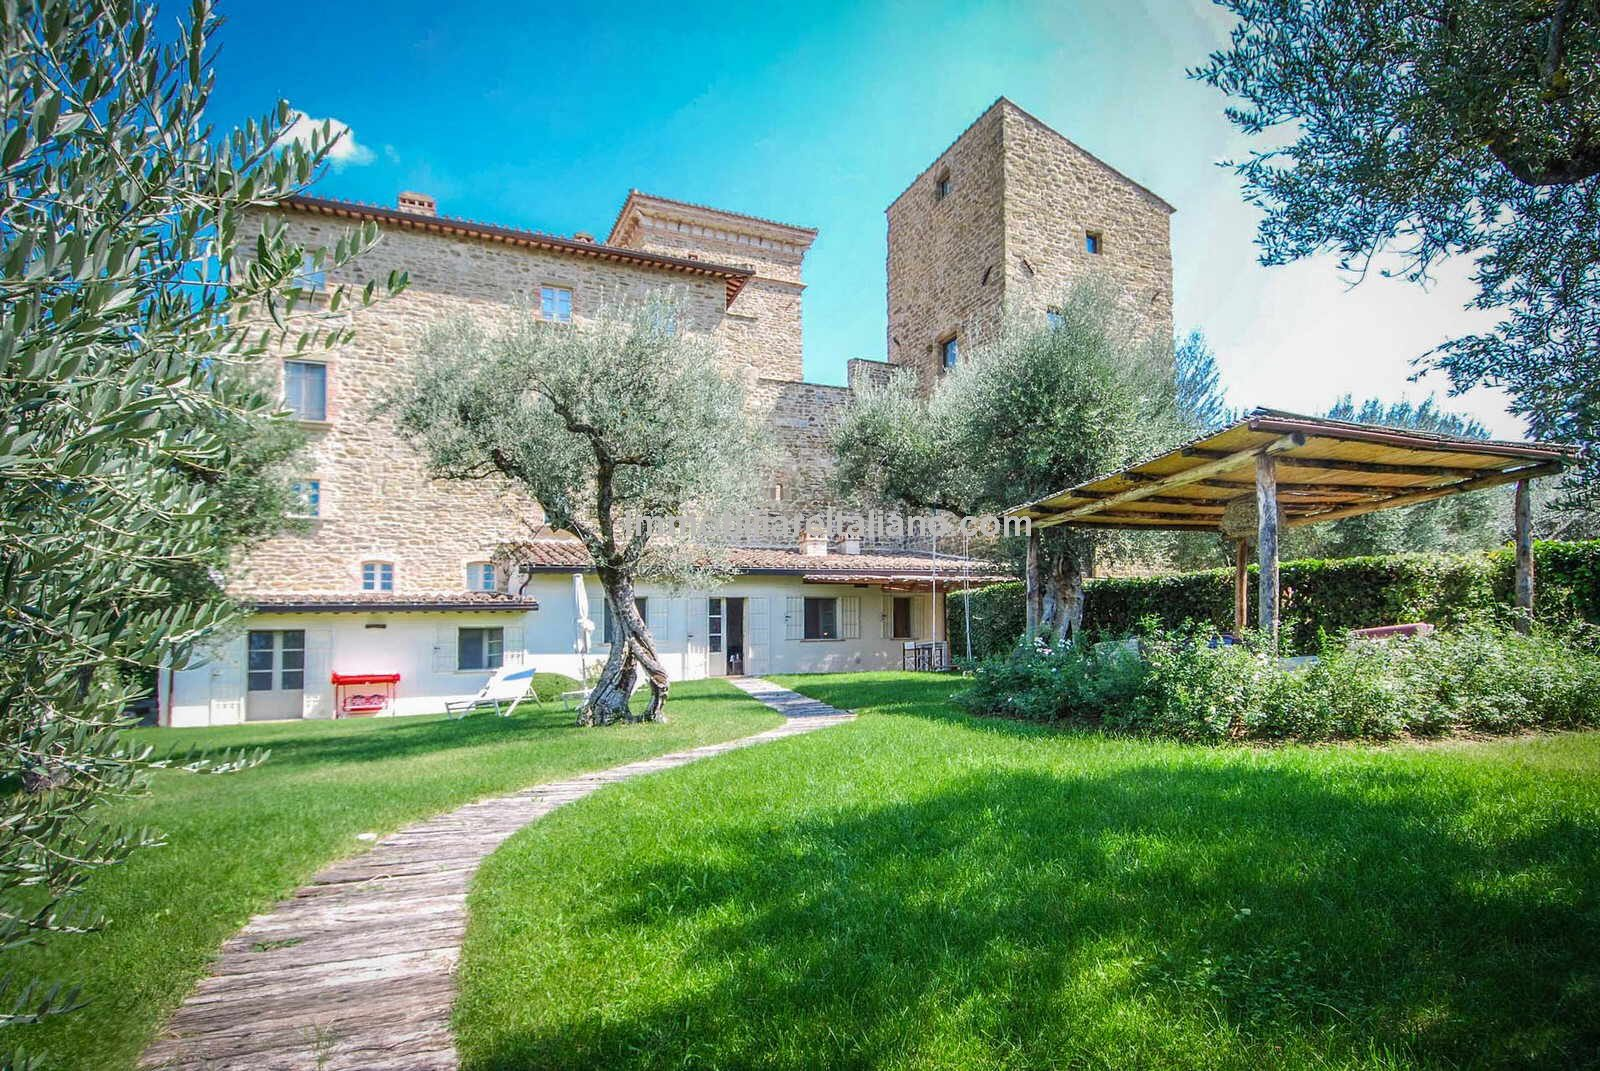 Apartment for sale in Italy, great location, Lake Trasimeno in Umbria.